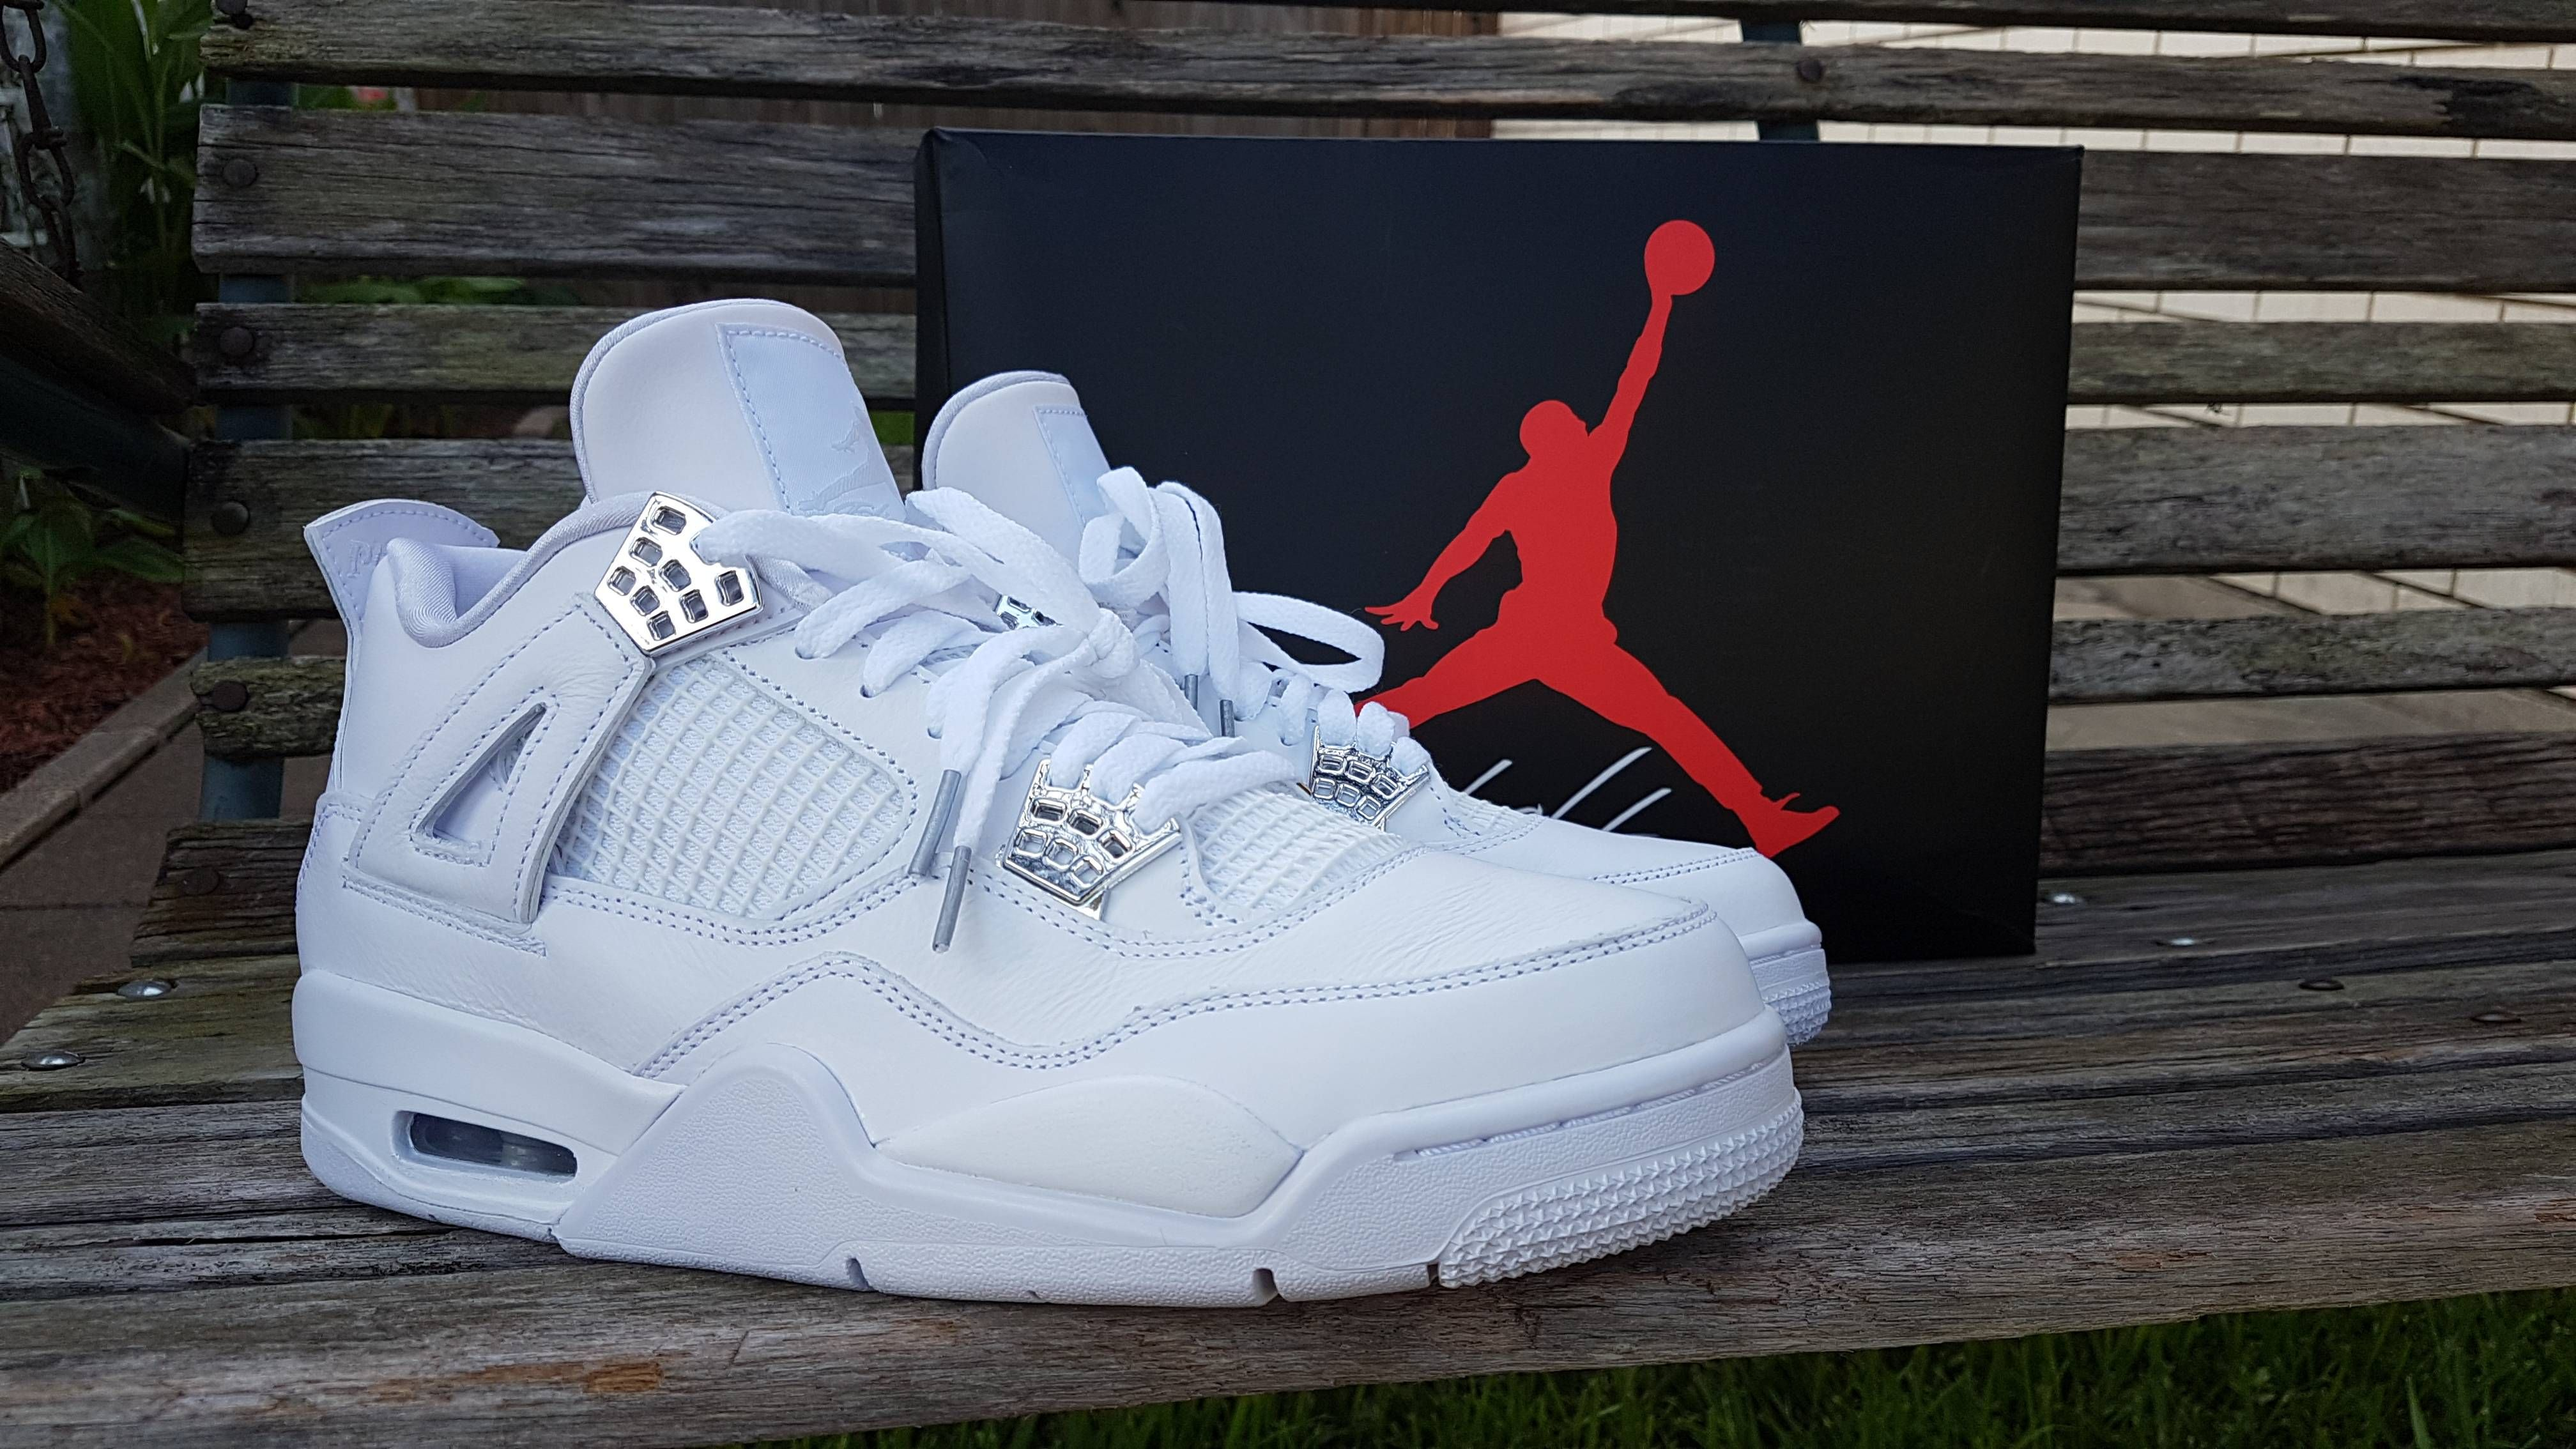 4ffd6ae1397 I got these on my Birthday Also My first Pair of Jordans (Pure Money 4s)